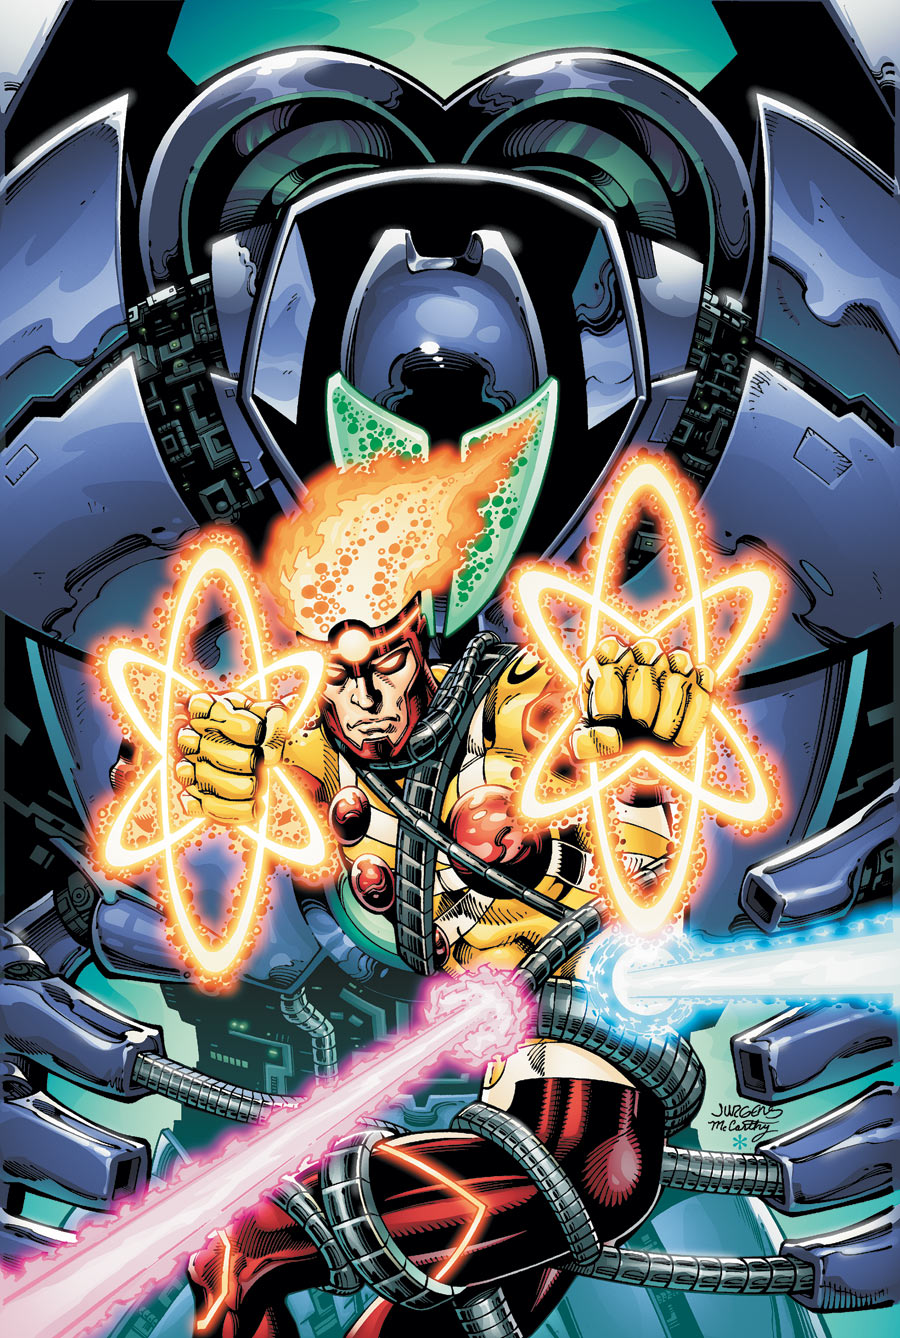 Fury of Firestorm: The Nuclear Man #16 by Dan Jurgens, Ray McCarthy, and Hi-Fi!